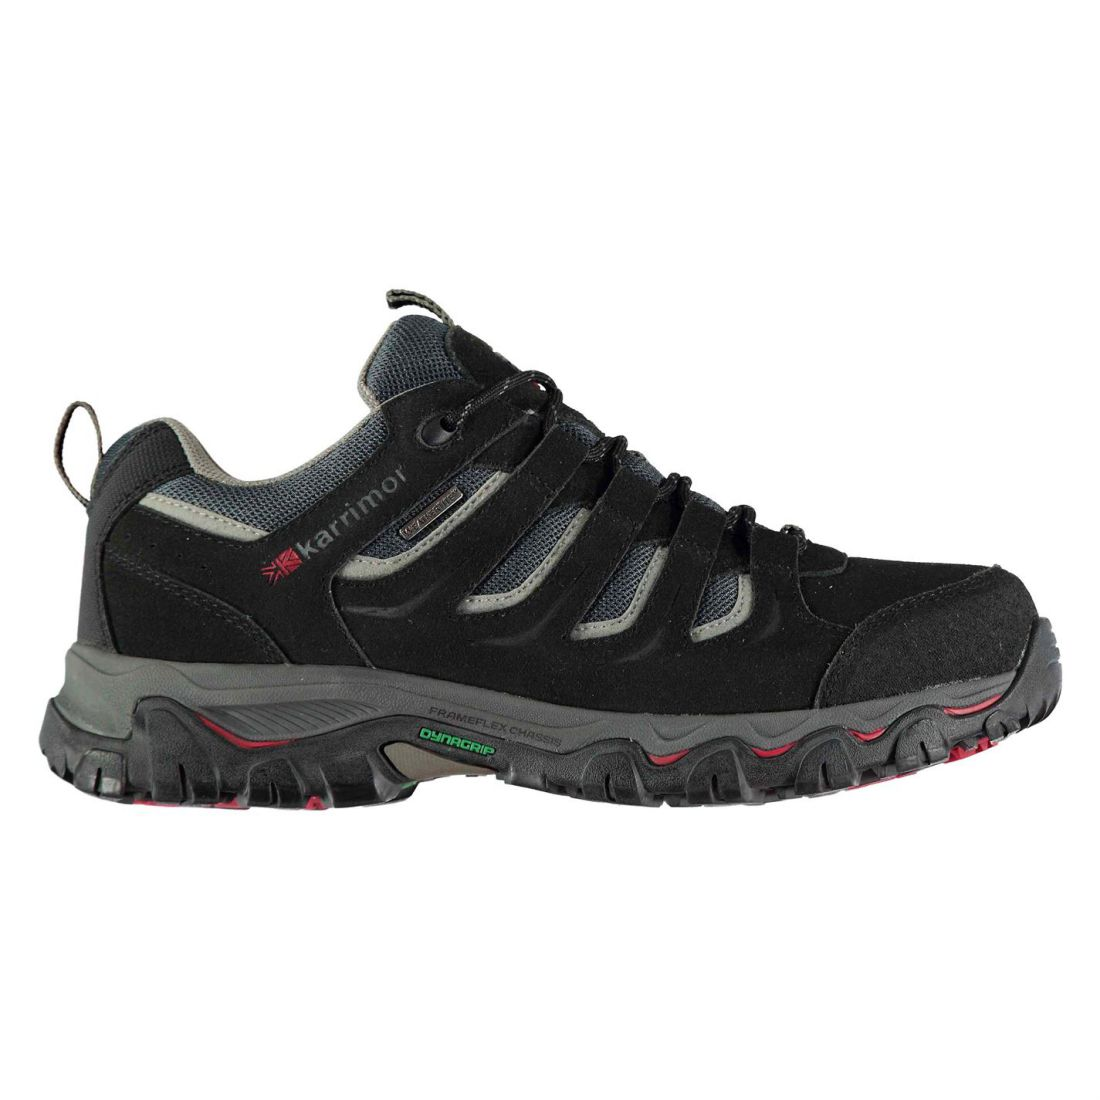 Karrimor Mount Low Treking Hiking Weathertite Walking shoes Lace Up  Gents Mens  novelty items